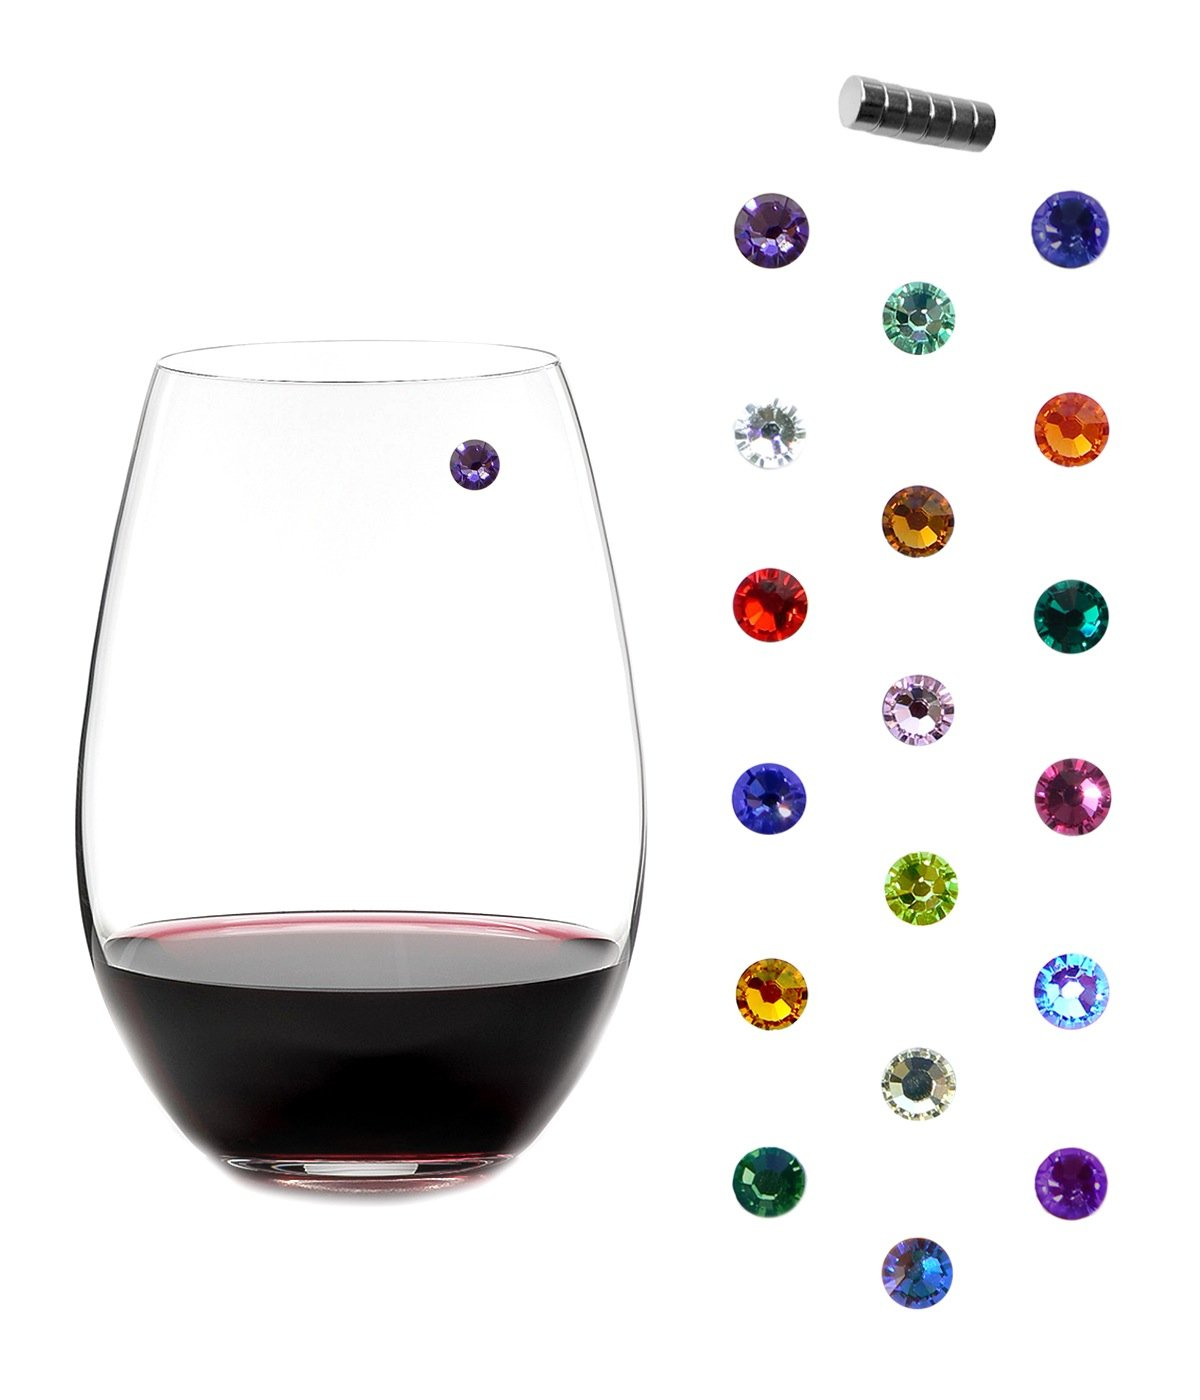 Swarovski Crystal Magnetic Wine Charms - Bundle of 3 Sets of 6 - Makes 18 Unique Glass Markers by Simply Charmed